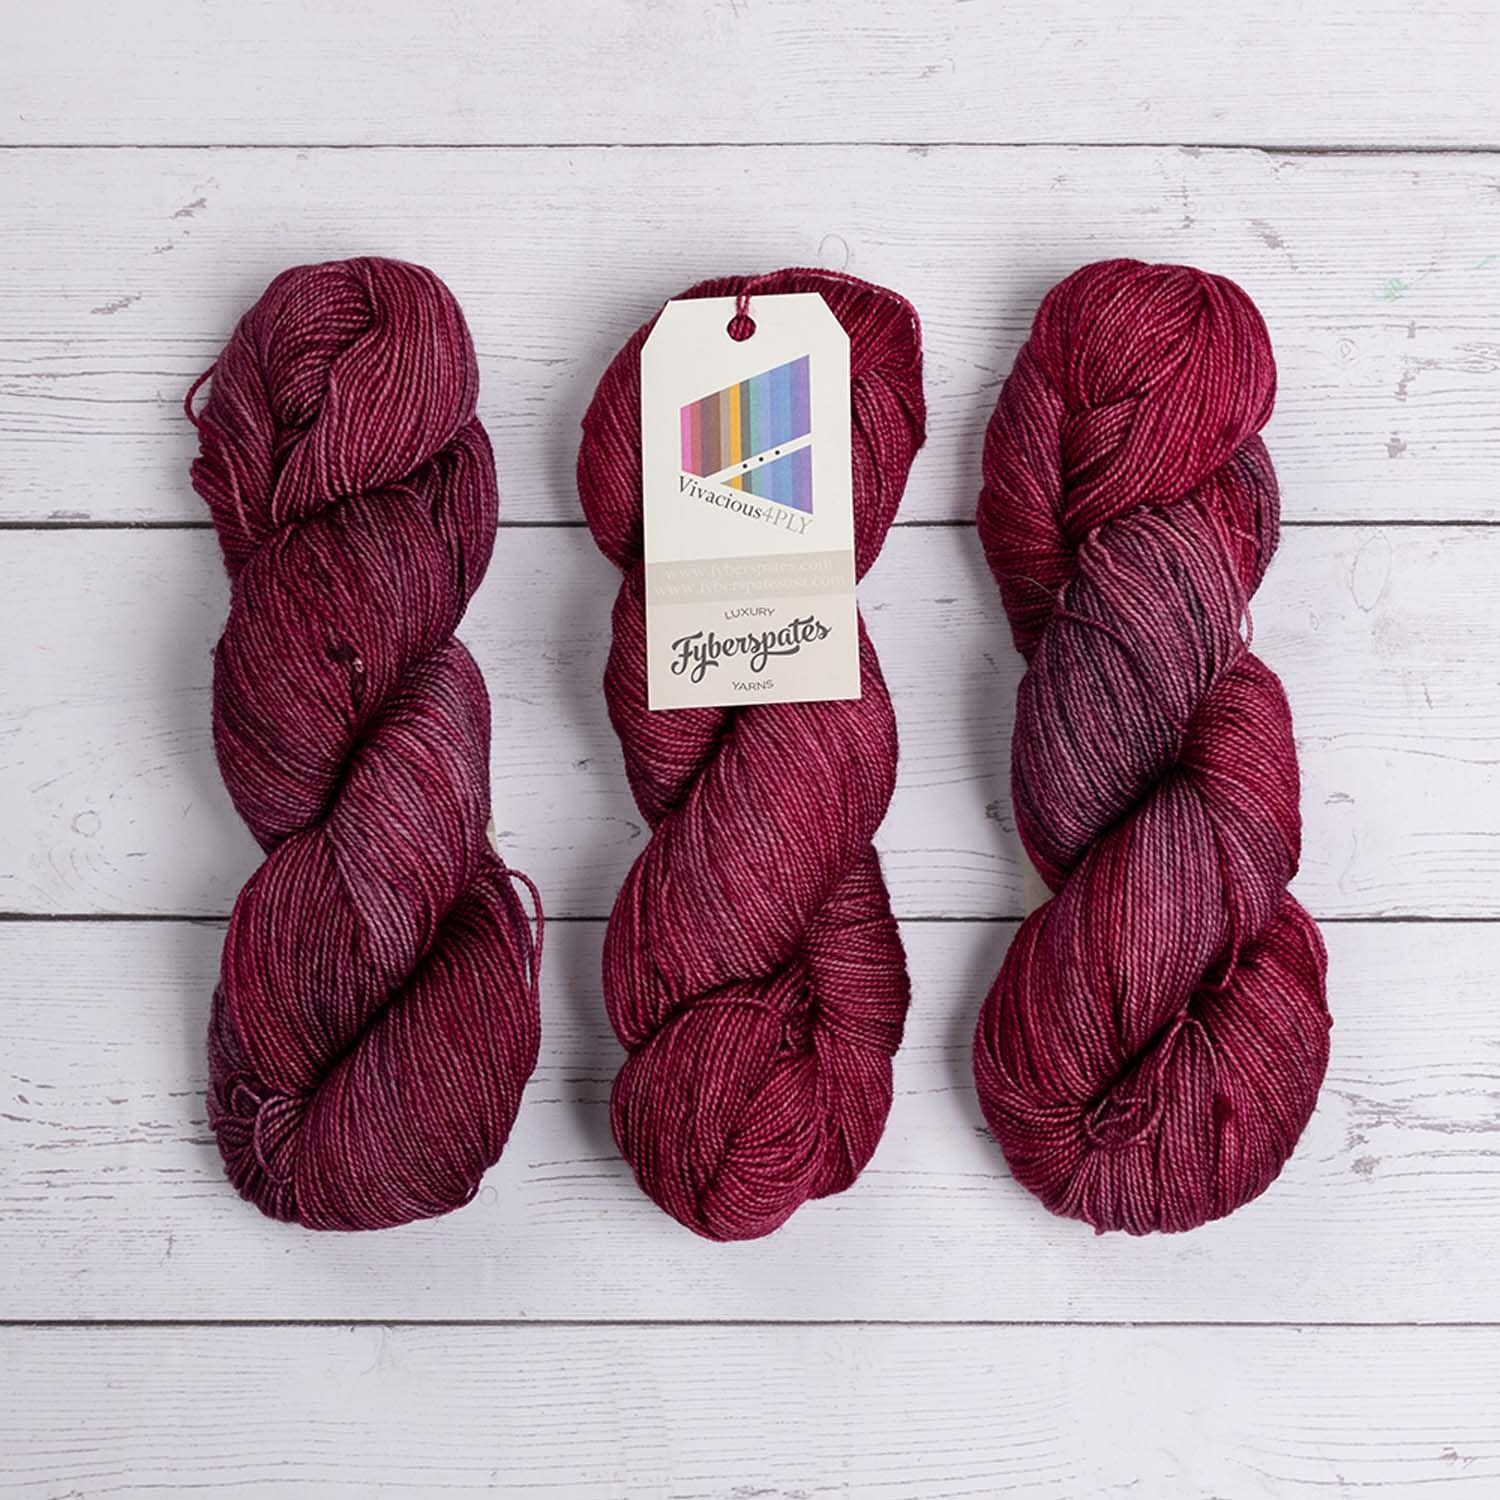 Fyberspates VIVACIOUS 4 PLY - 600 SPICED PLUM